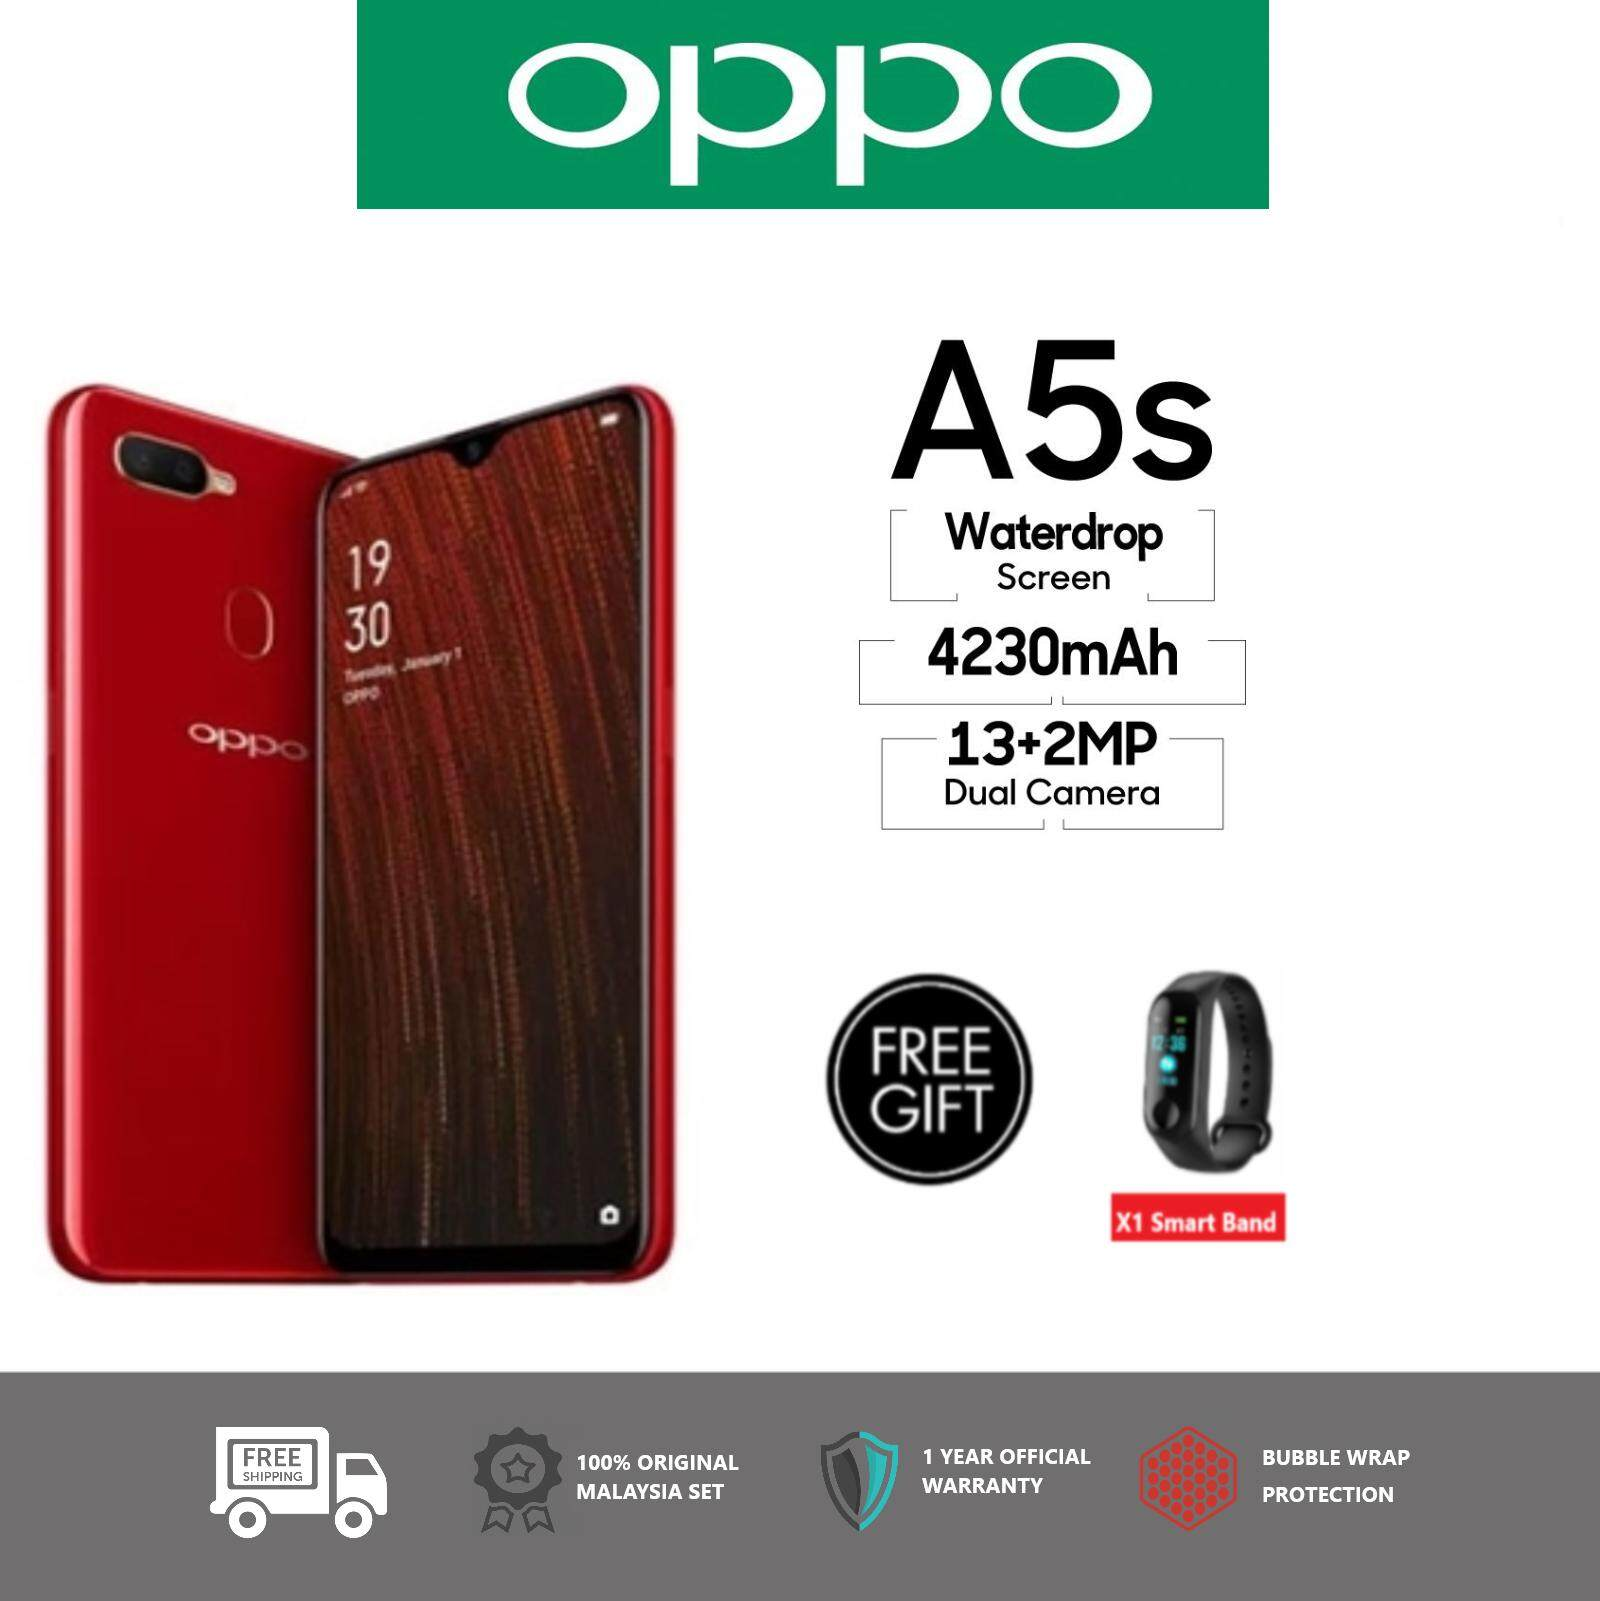 Oppo A5s [ 3GB Ram + 32GB Rom] - Original Malaysia Set - Free Exclusive Gift